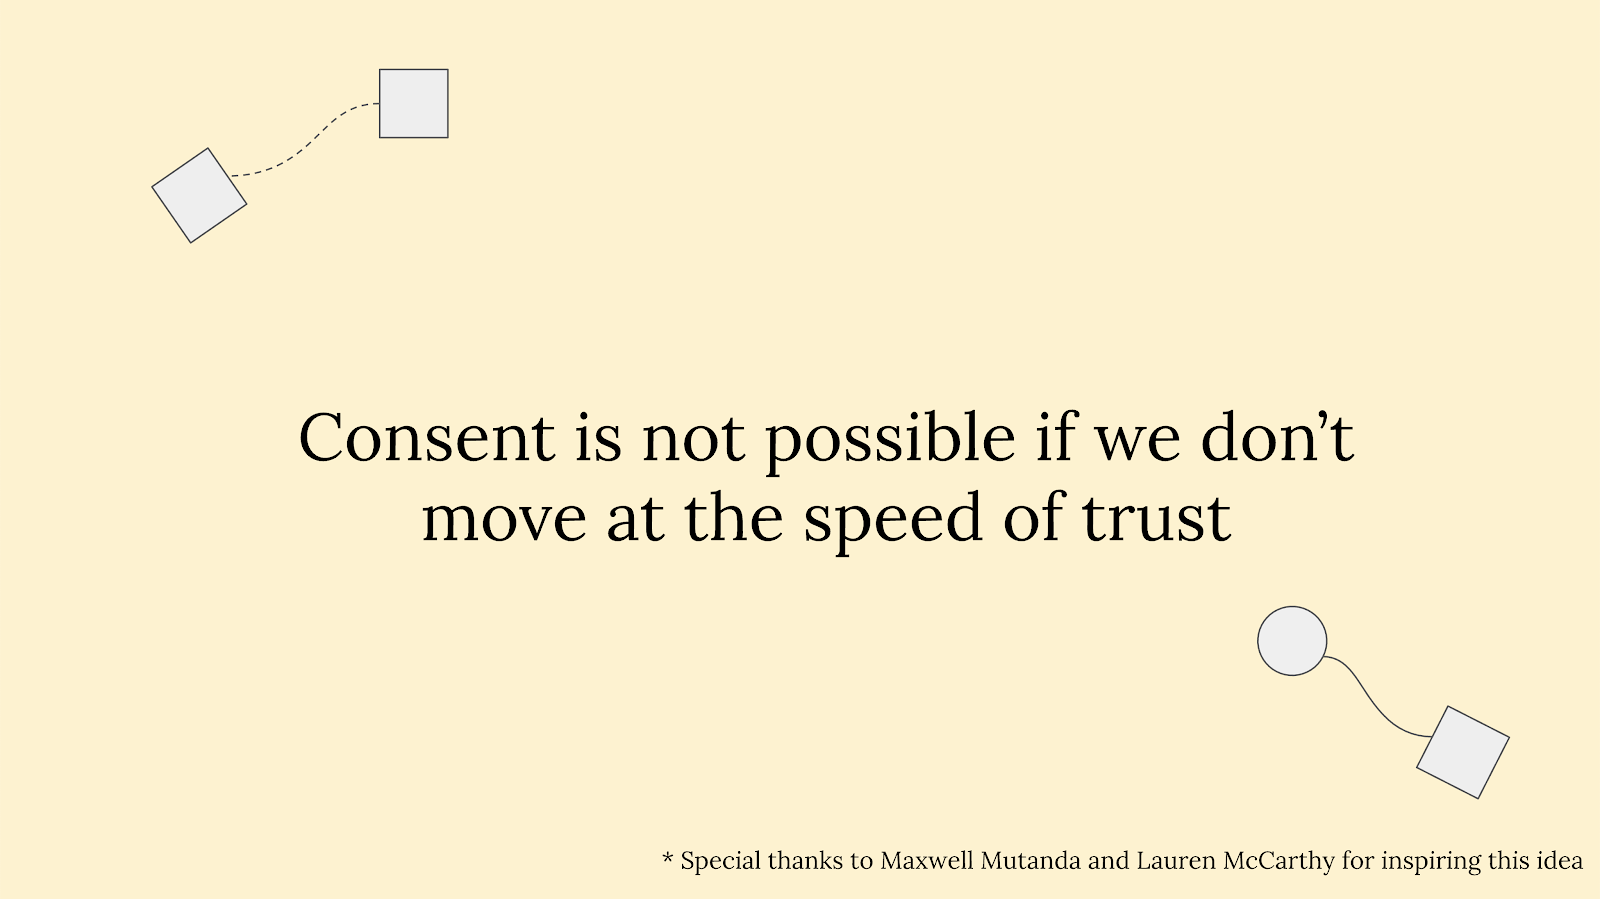 """Slide reading """"Consent is not possible if we don't move at the speed of trust"""" with circles and squares connected via w"""